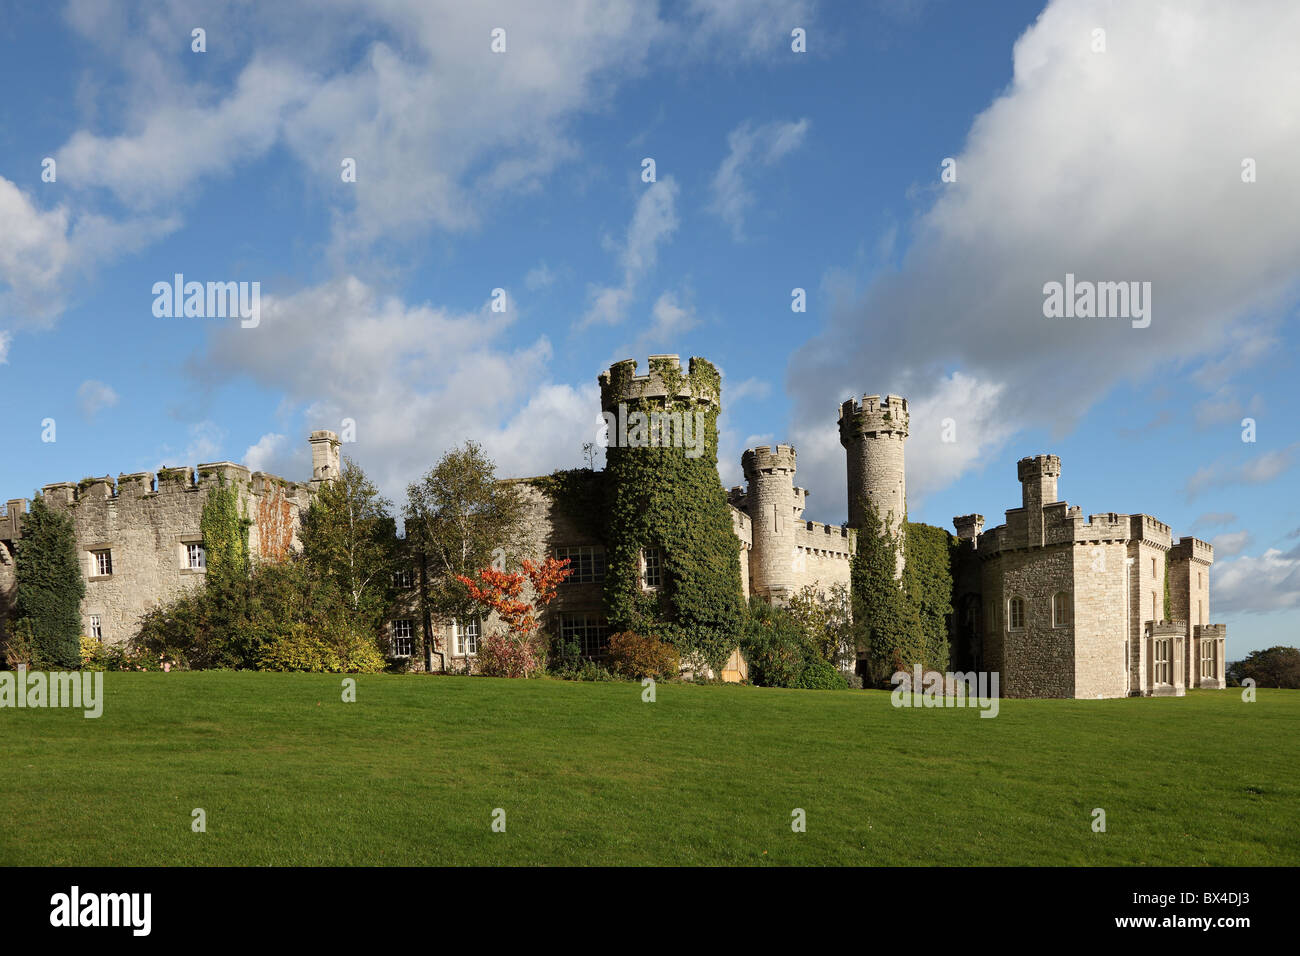 View South East corner Bodelwyddan Castle near Bodelwyddan Denbighshire North Wales Stock Photo